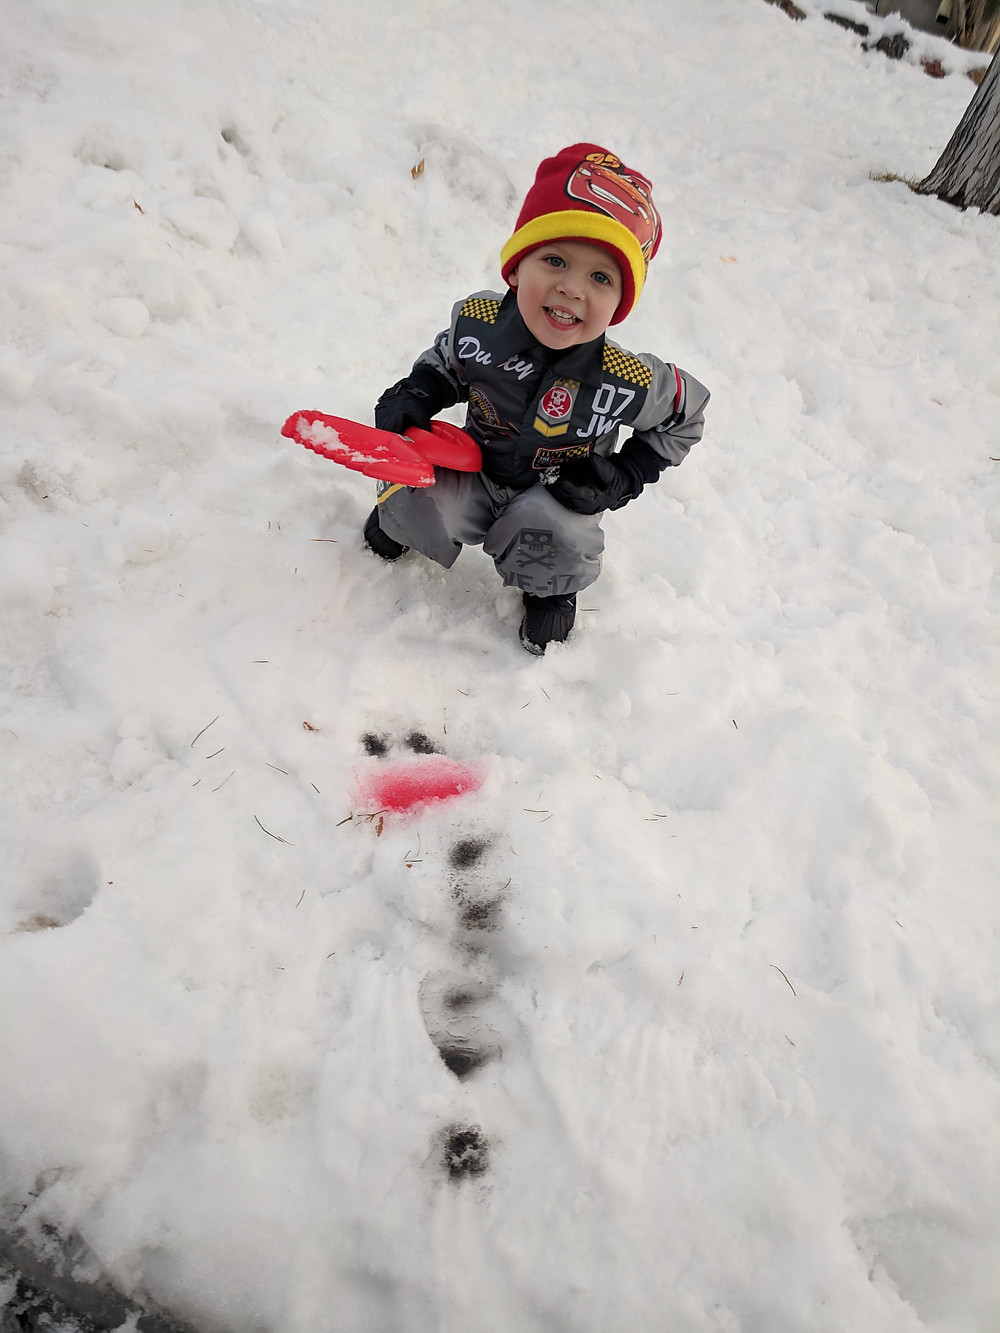 Child playing in snow making snowman